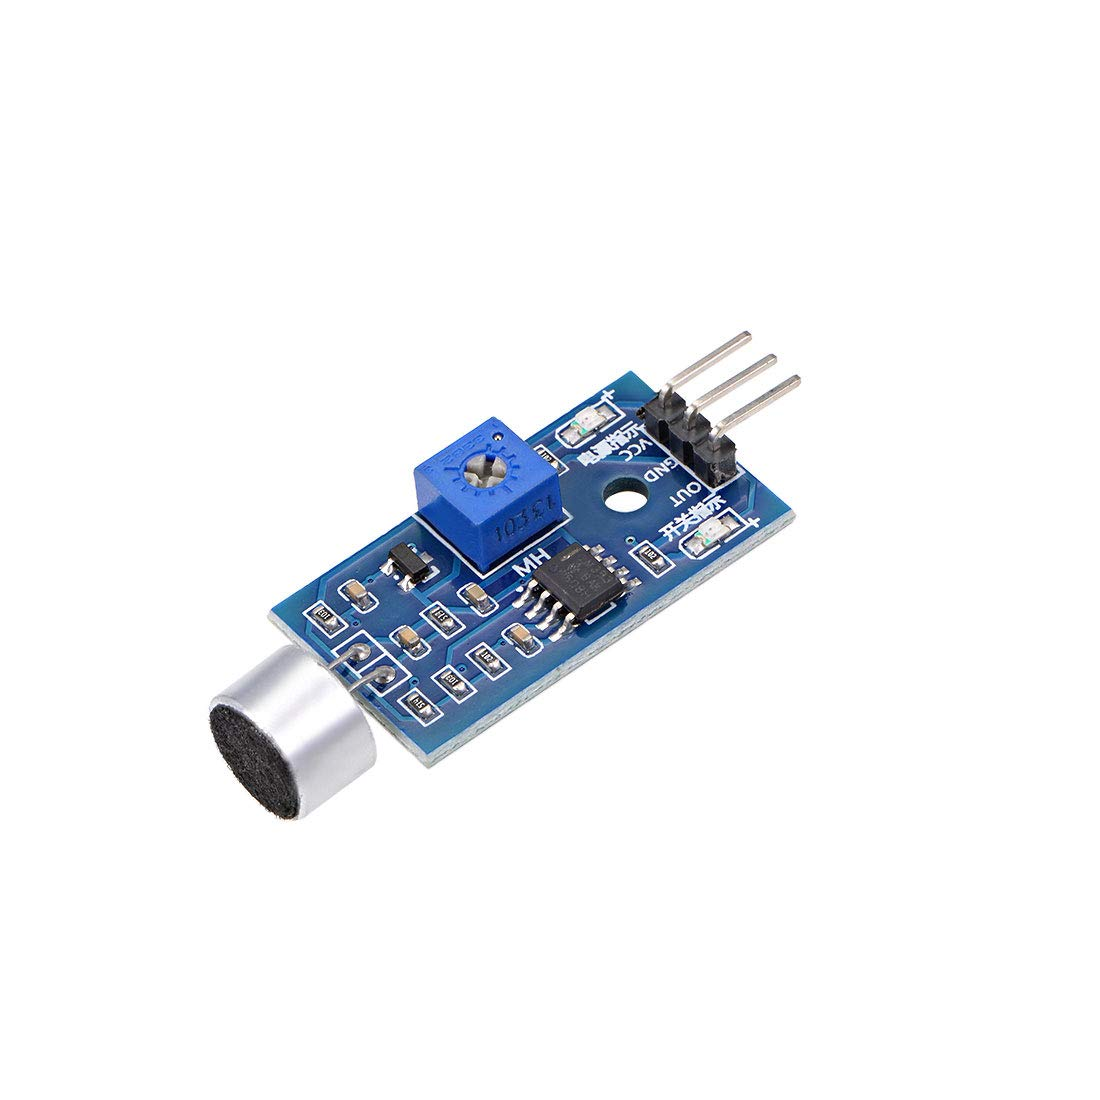 uxcell Microphone Sound Sensor Voice Detection Module with Digital Output for Arduino DIY Projects 5pcs